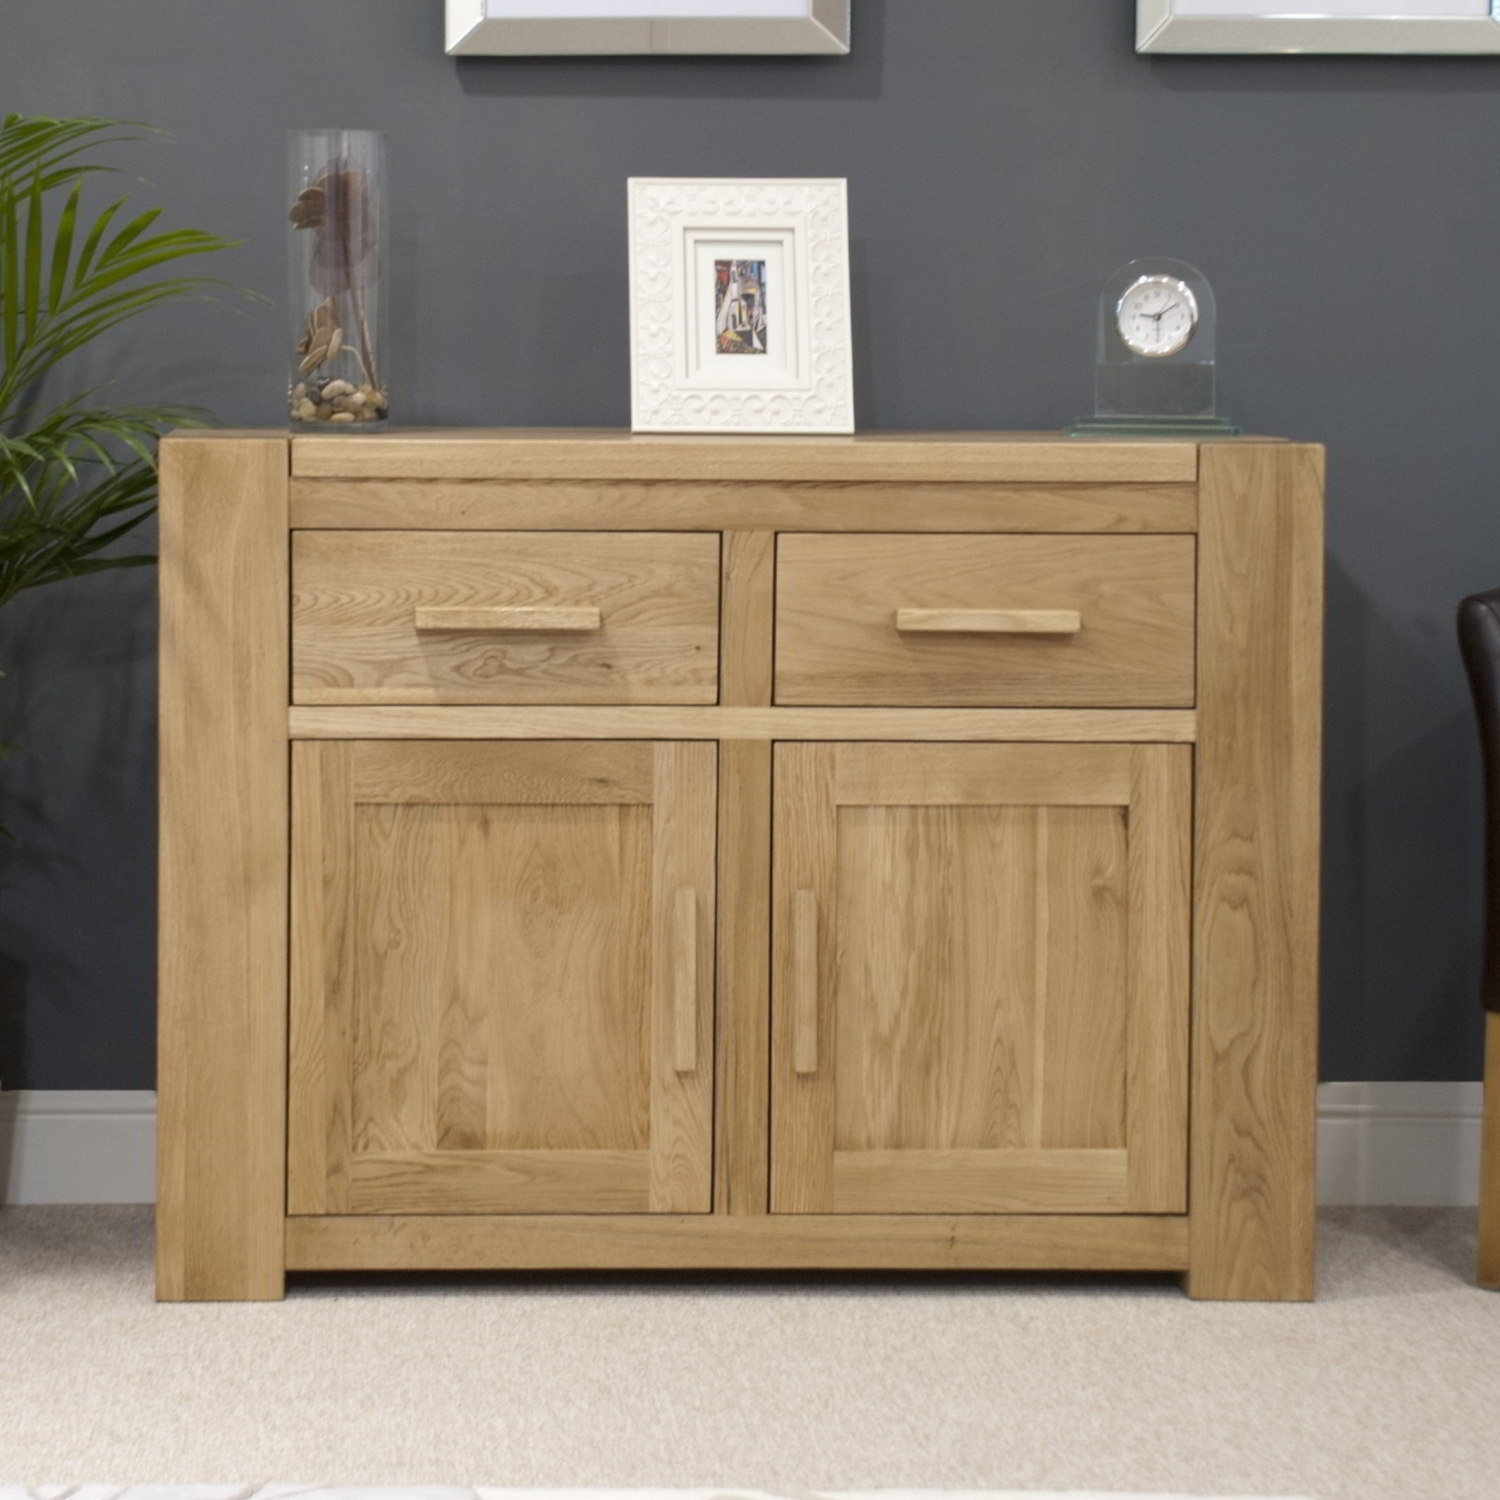 Living Room Sideboard | Baci Living Room Within Jaxon Sideboards (View 18 of 30)